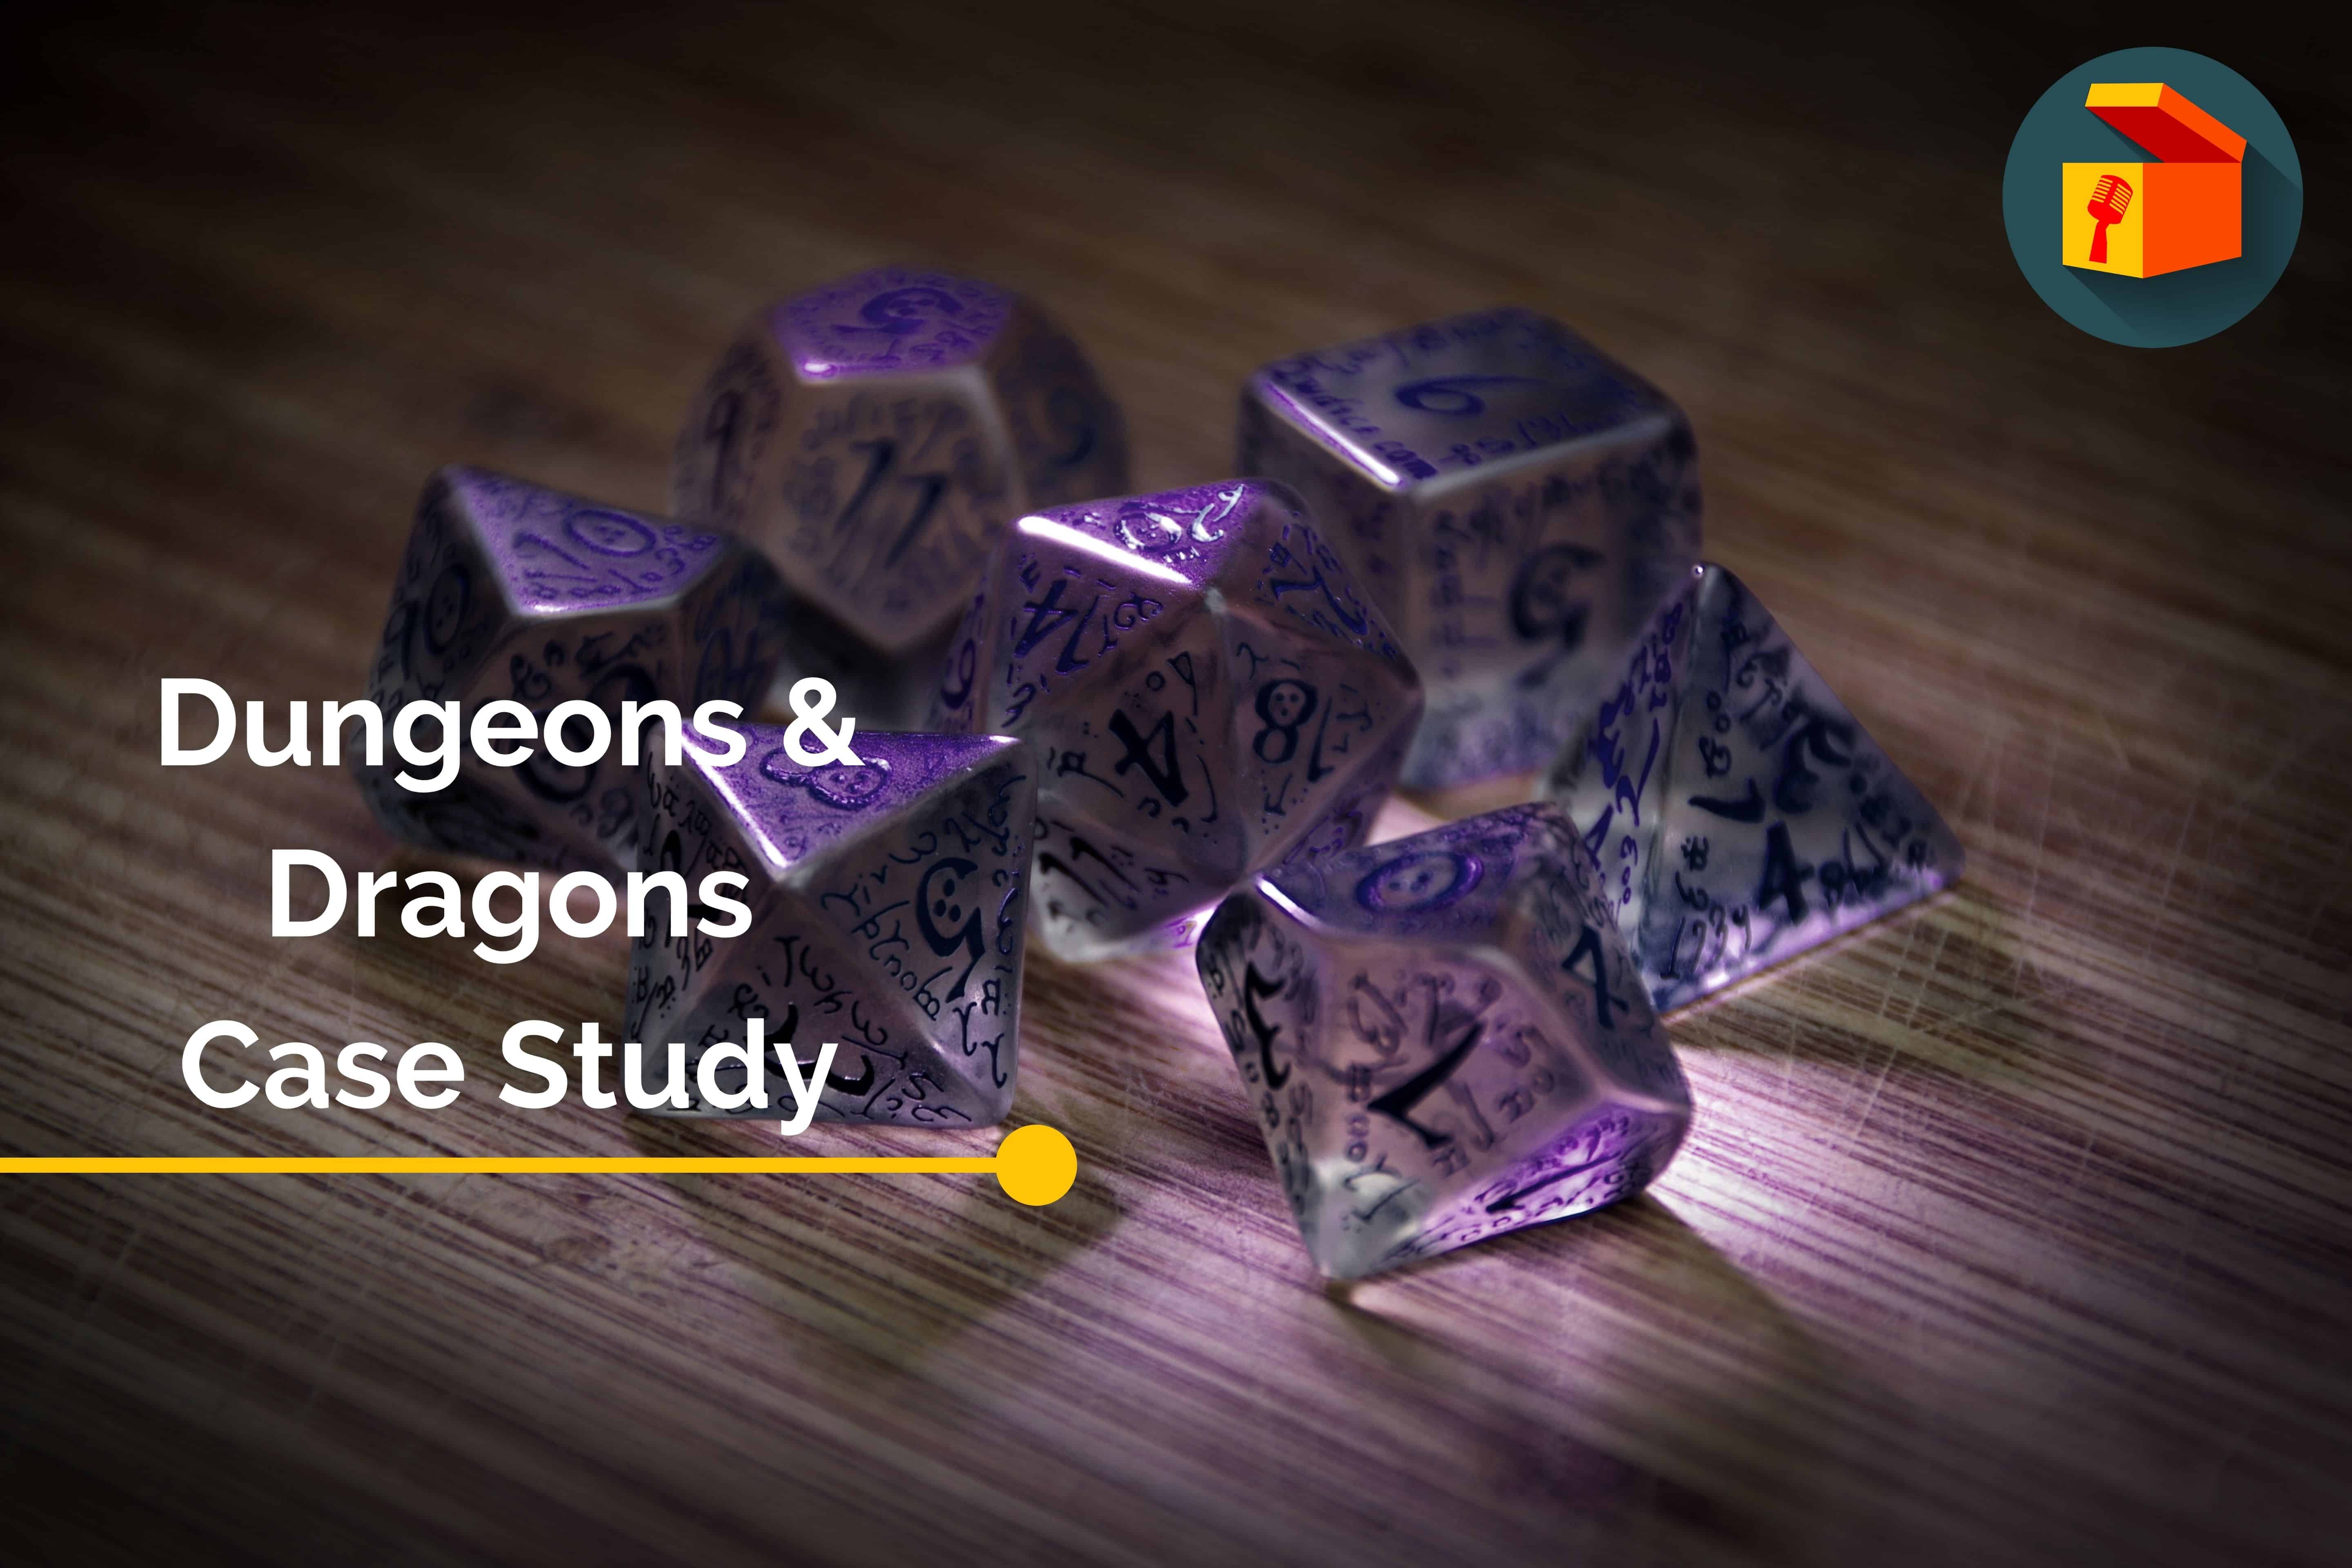 Dungeons and Dragons Case Study